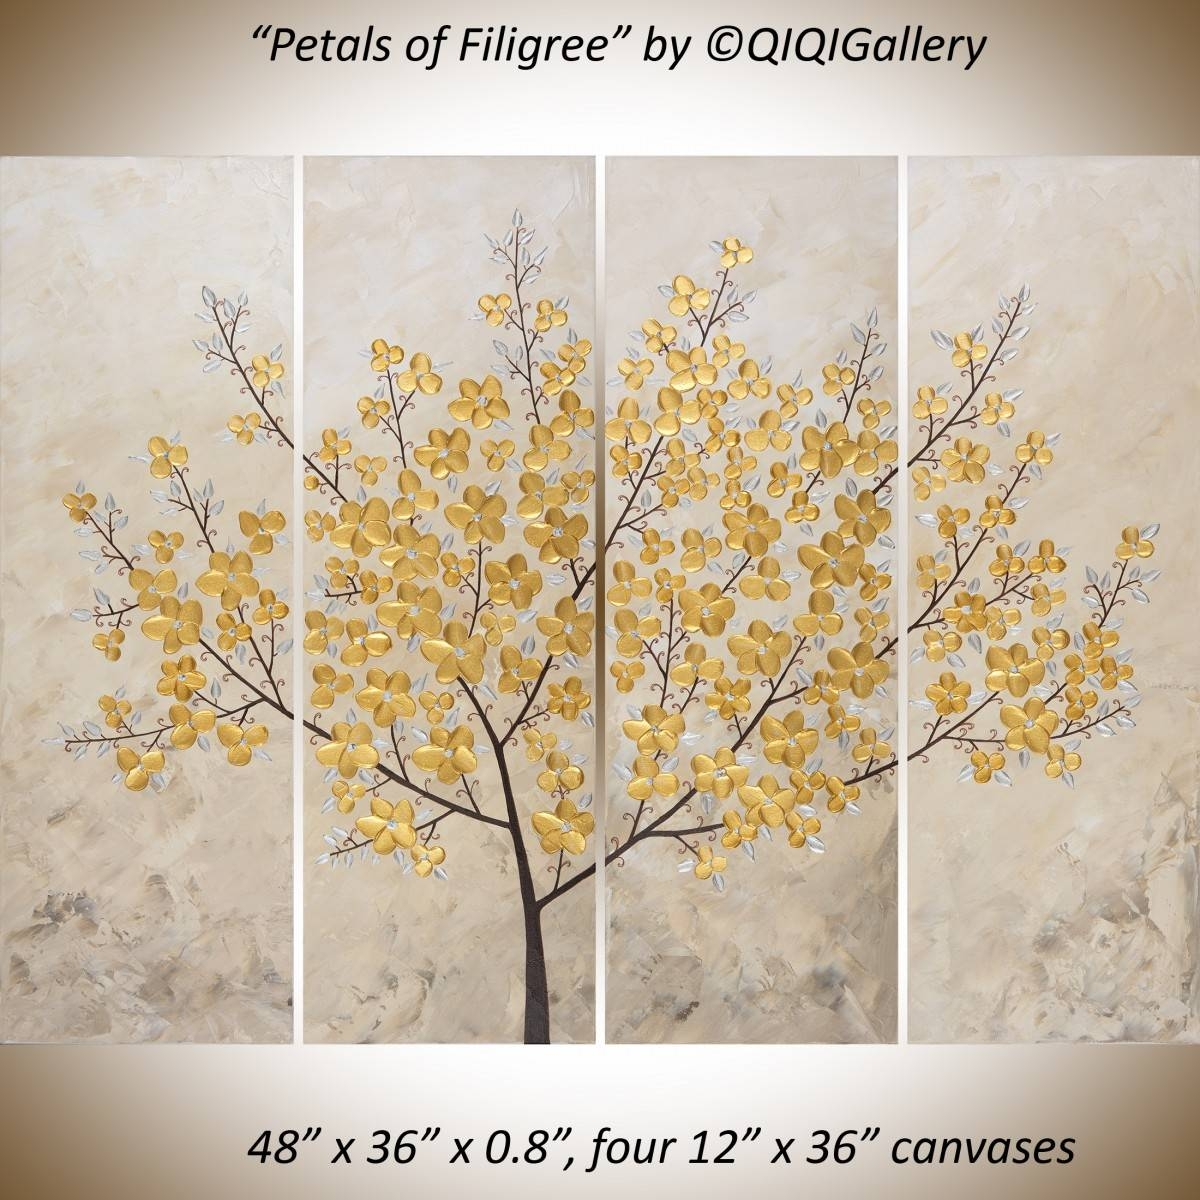 "Petals Of Filigreeqiqigallery 48"" X 36"" Original Modern Pertaining To Current Filigree Wall Art (View 19 of 30)"